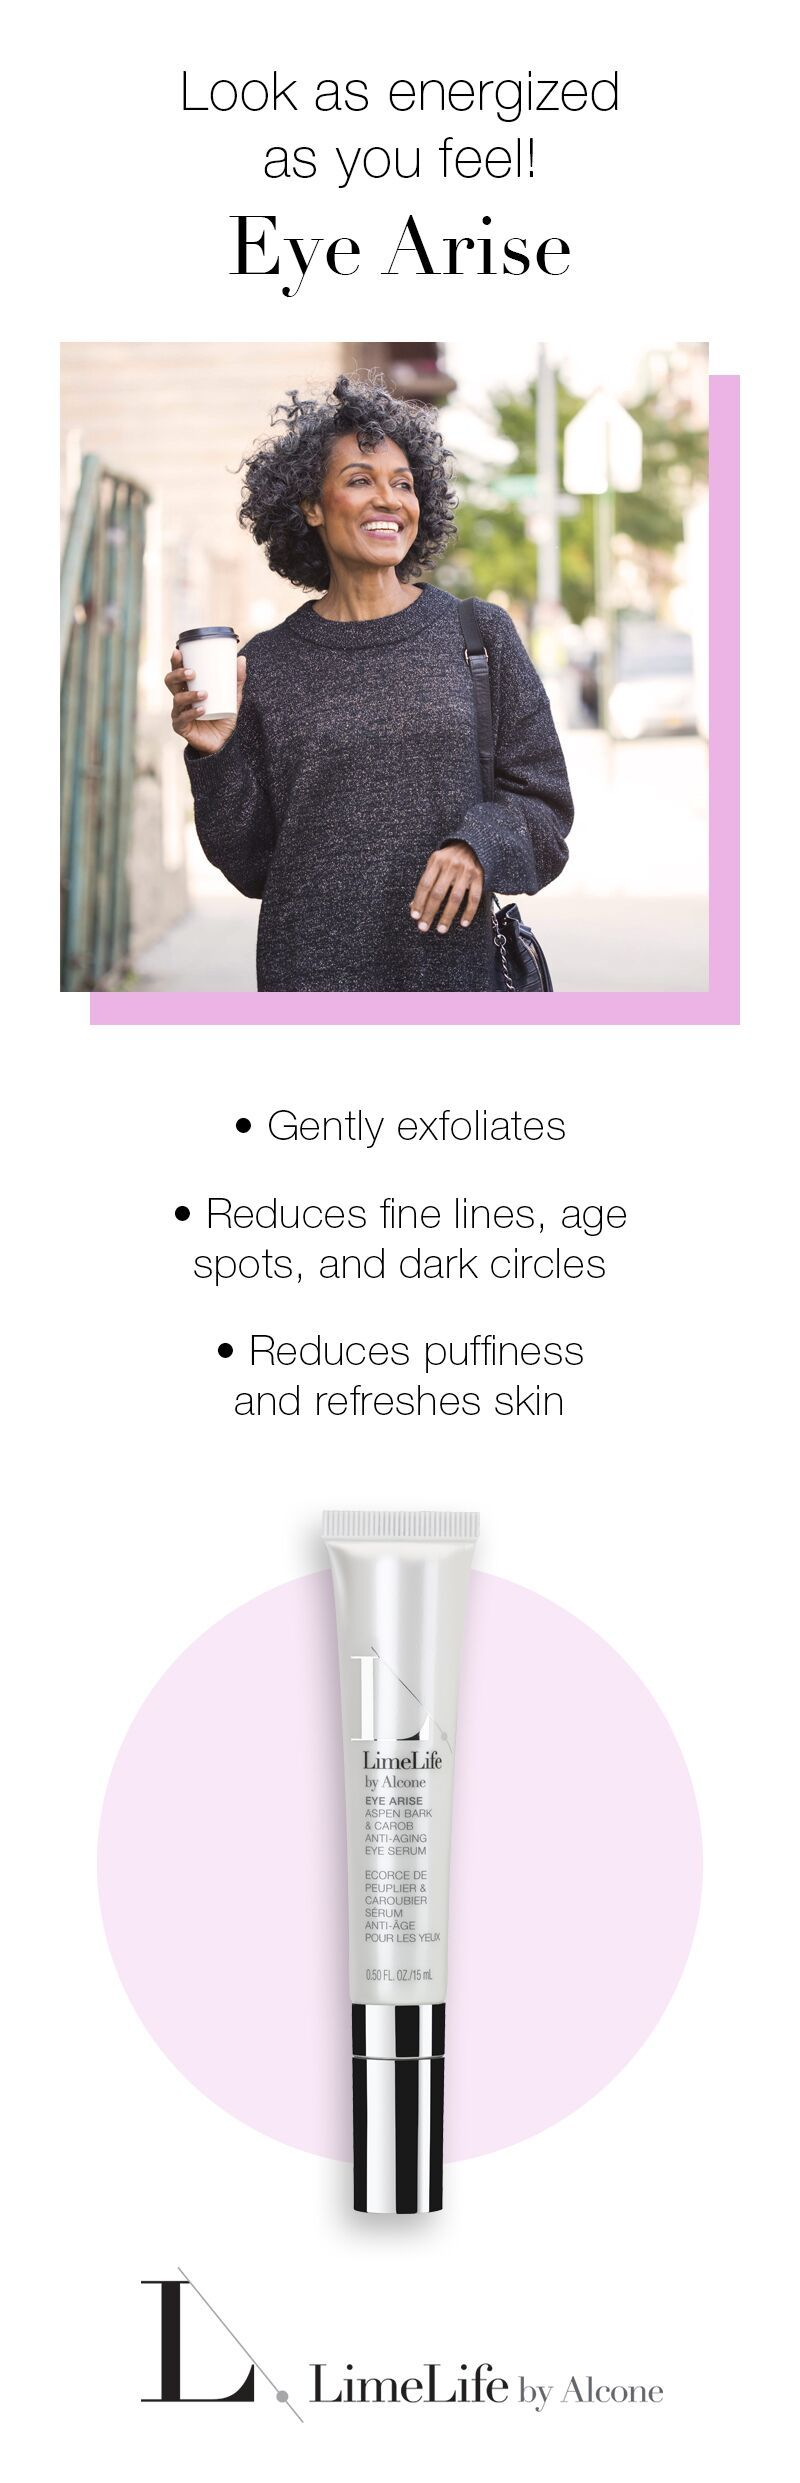 Pin by LimeLife by Alcone on SKINCARE Under eye